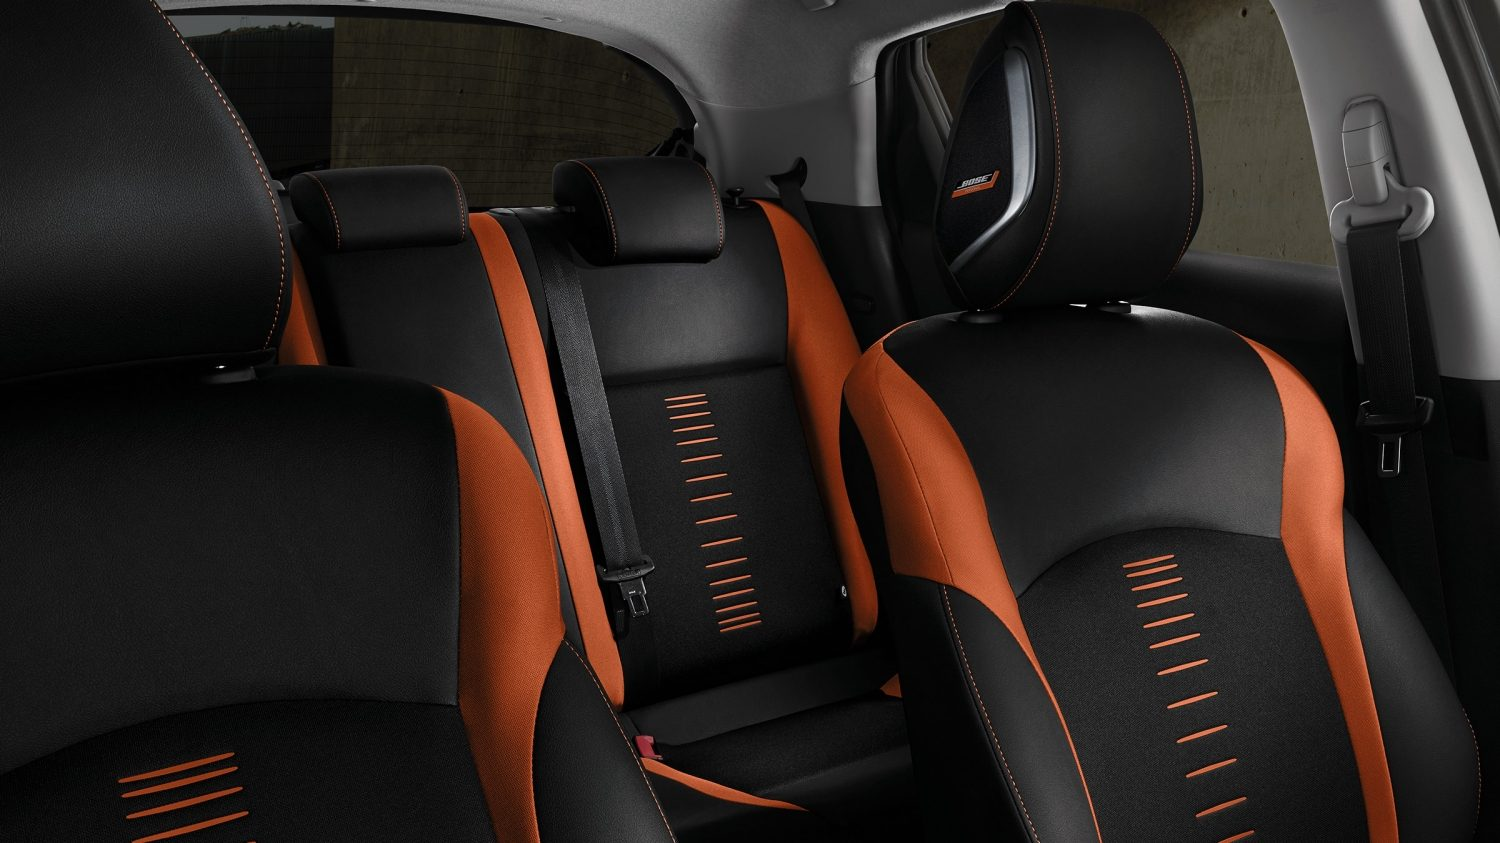 2018 Nissan JUKE energy orange trim